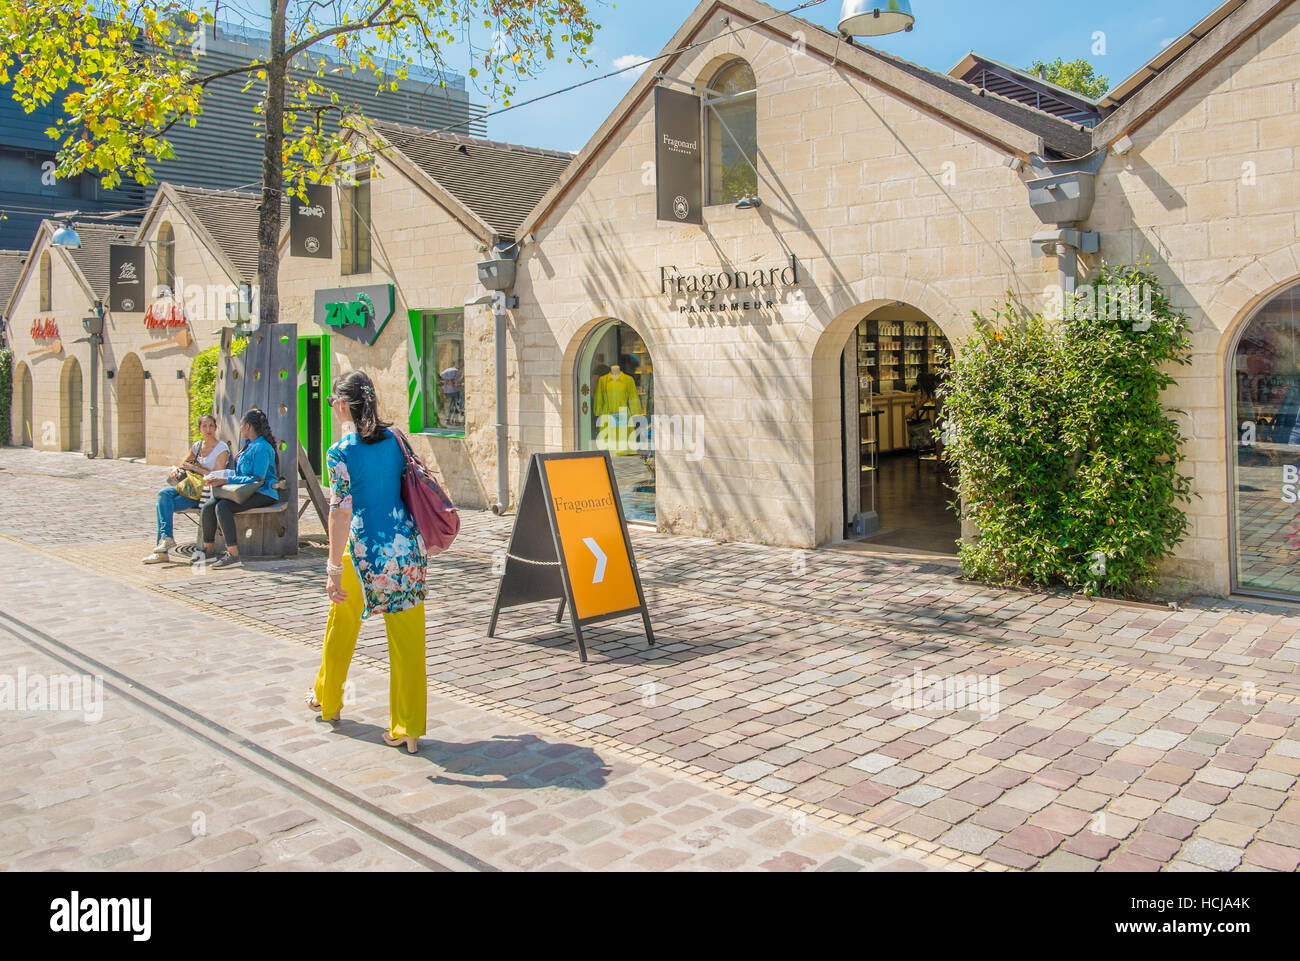 street scene in front of fragonard store bercy village outlet city - Stock Image